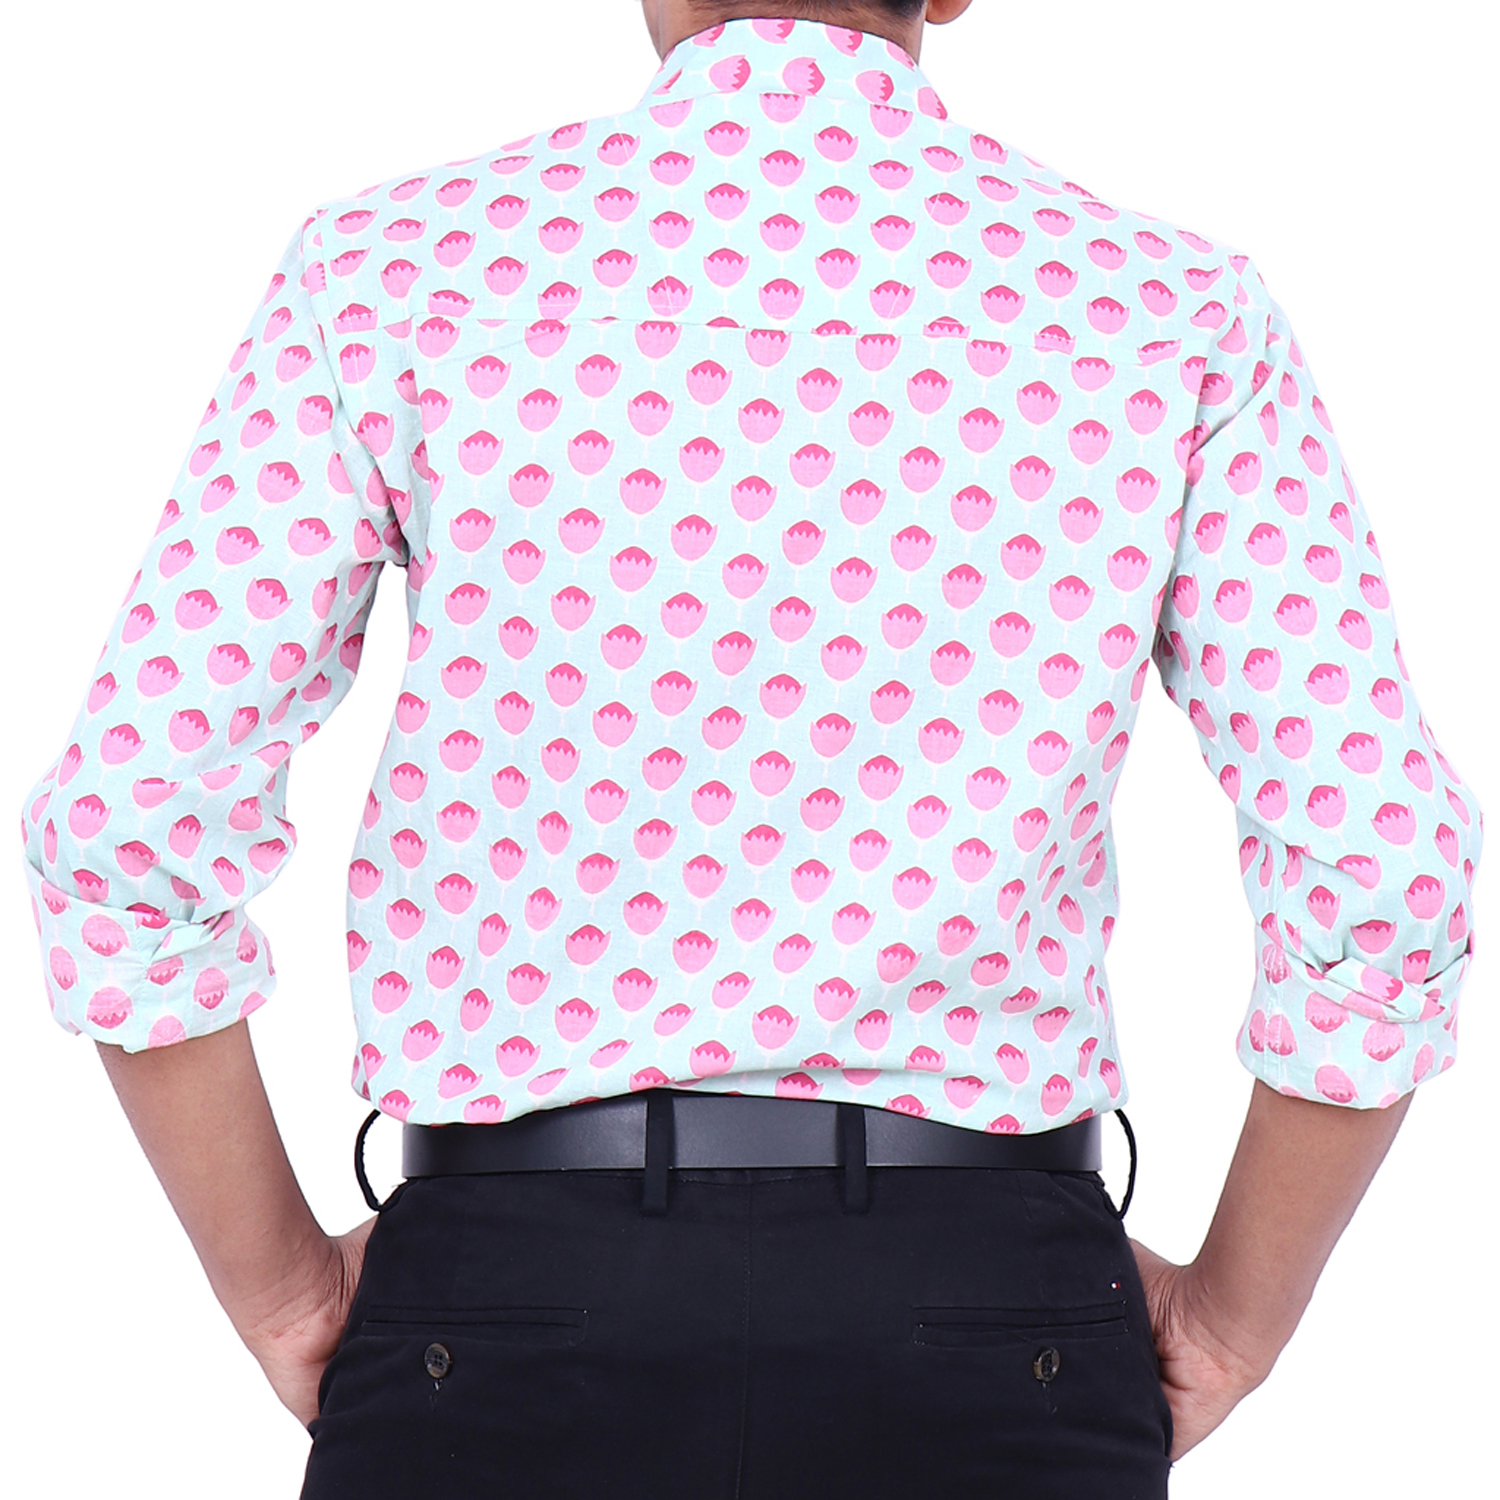 Pink Lotus Print Cotton Shirt